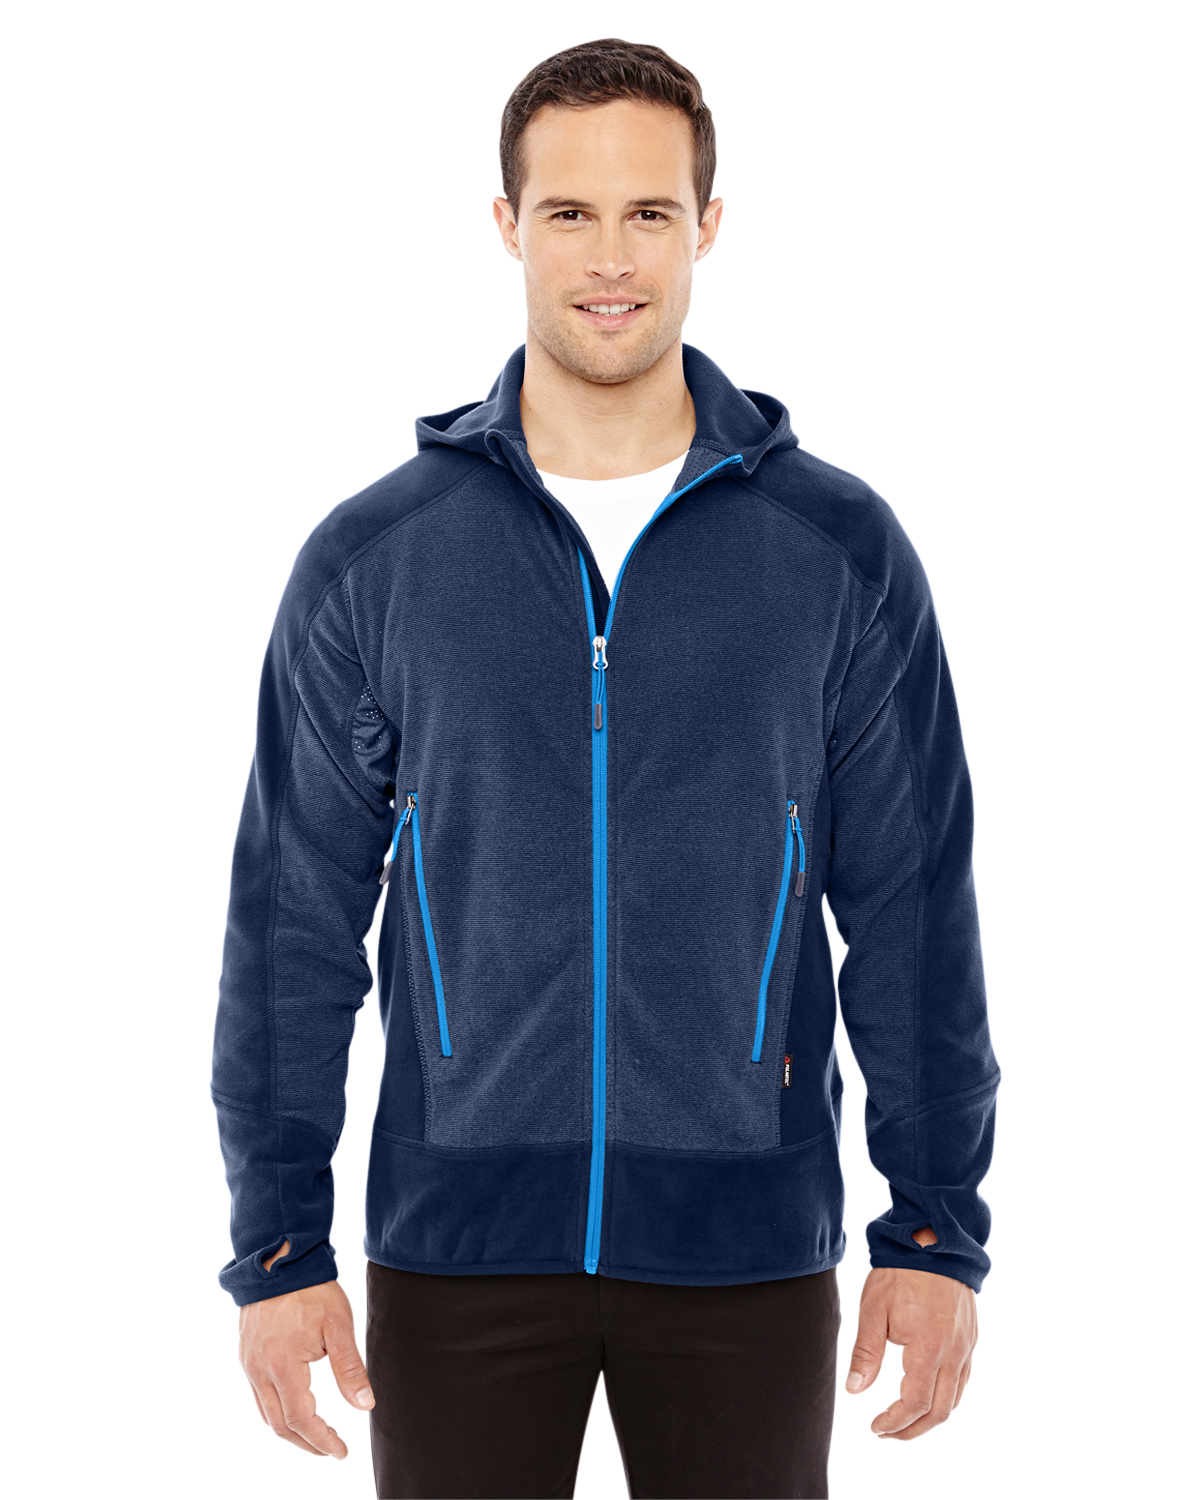 Ash City - North End Sport Red 88810 - Men's Vortex Polartec Active Fleece Jacket